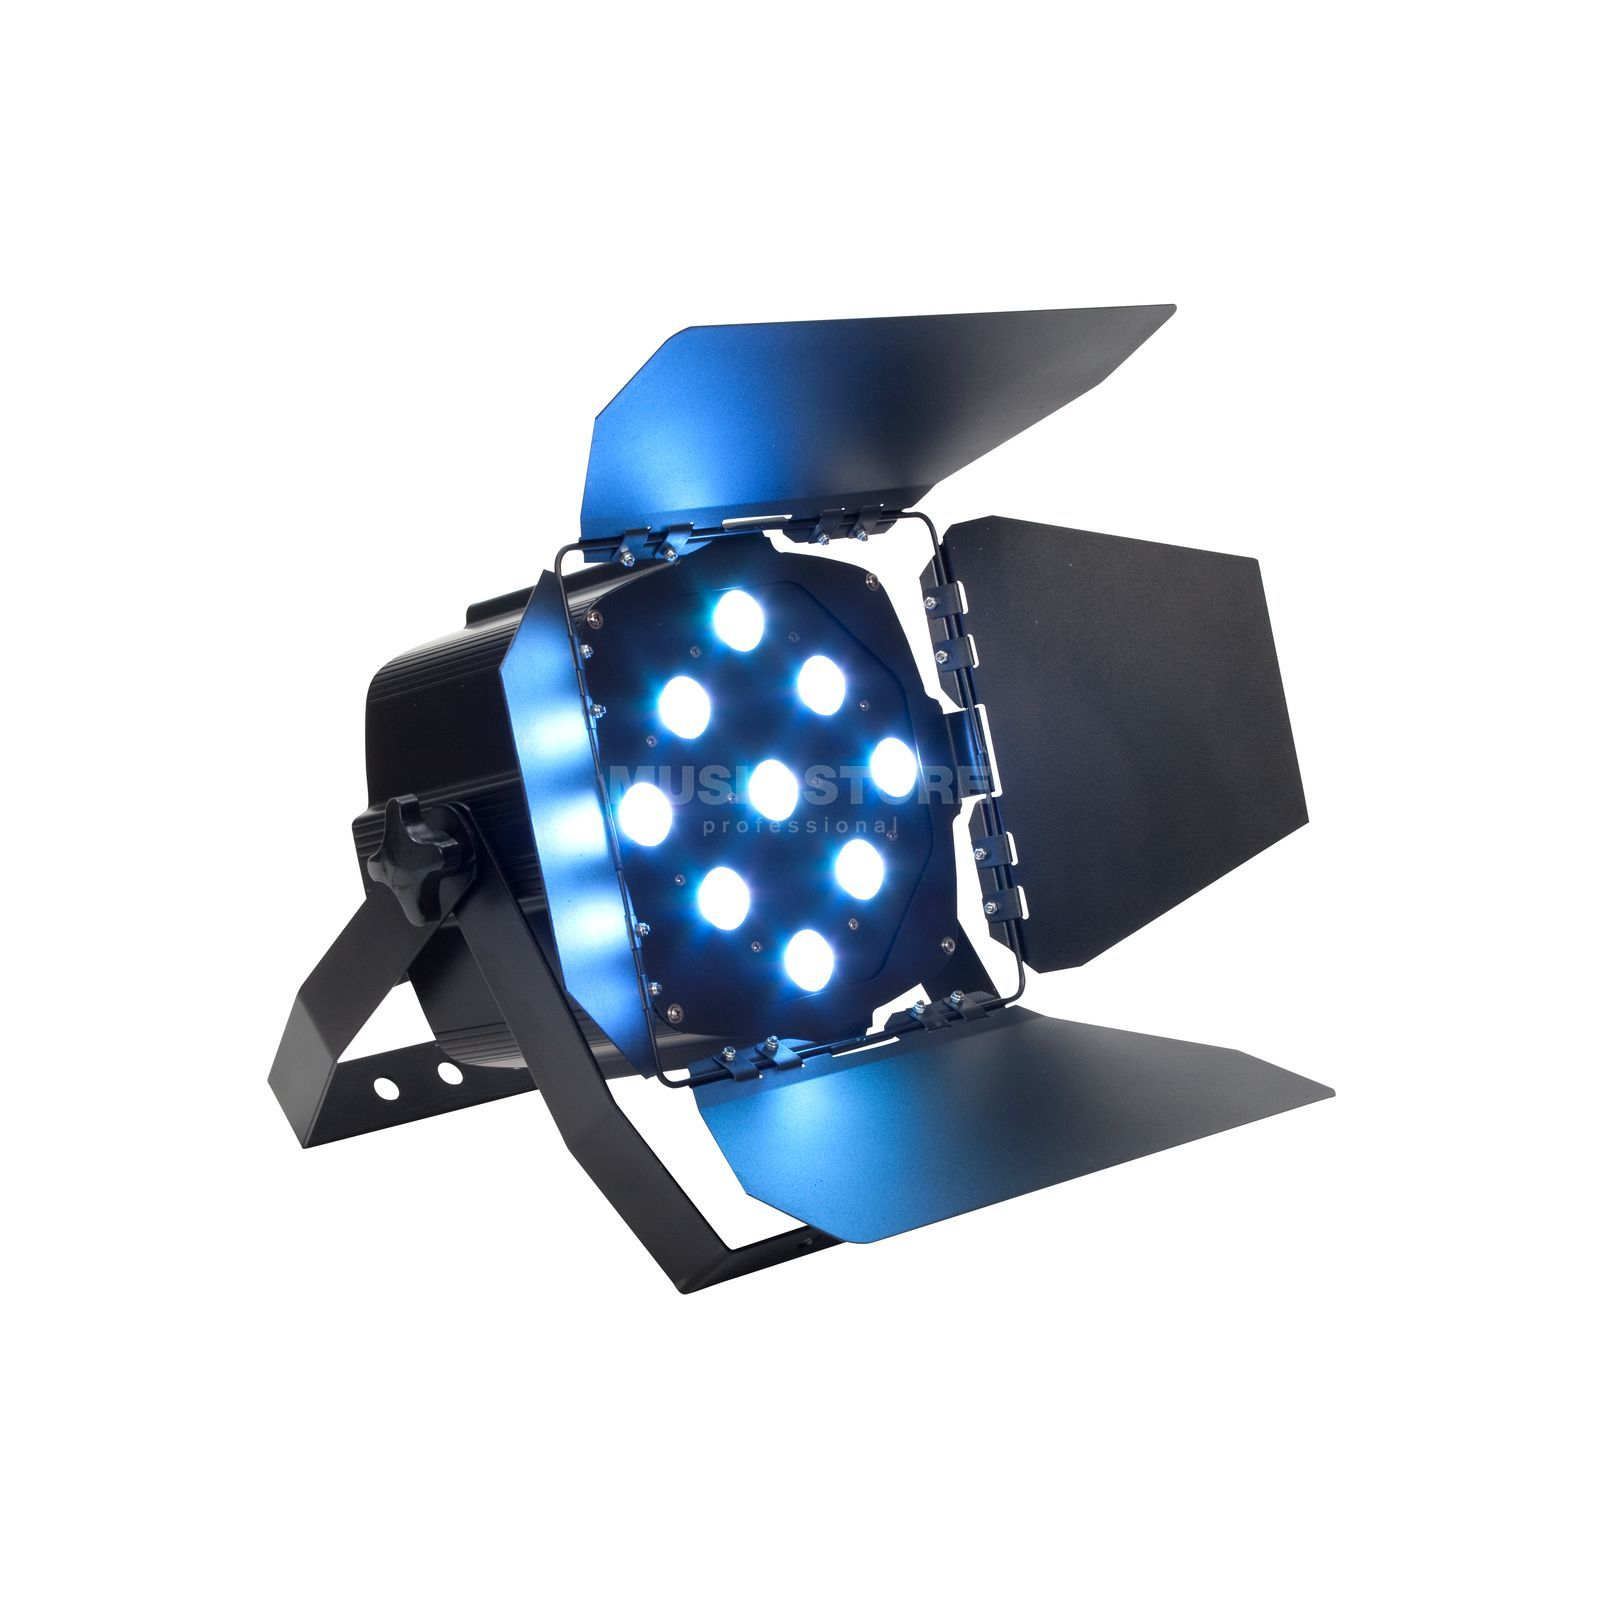 lightmaXX Platinum Multi Color Spot PRO 9x9W Tri LED Produktbild